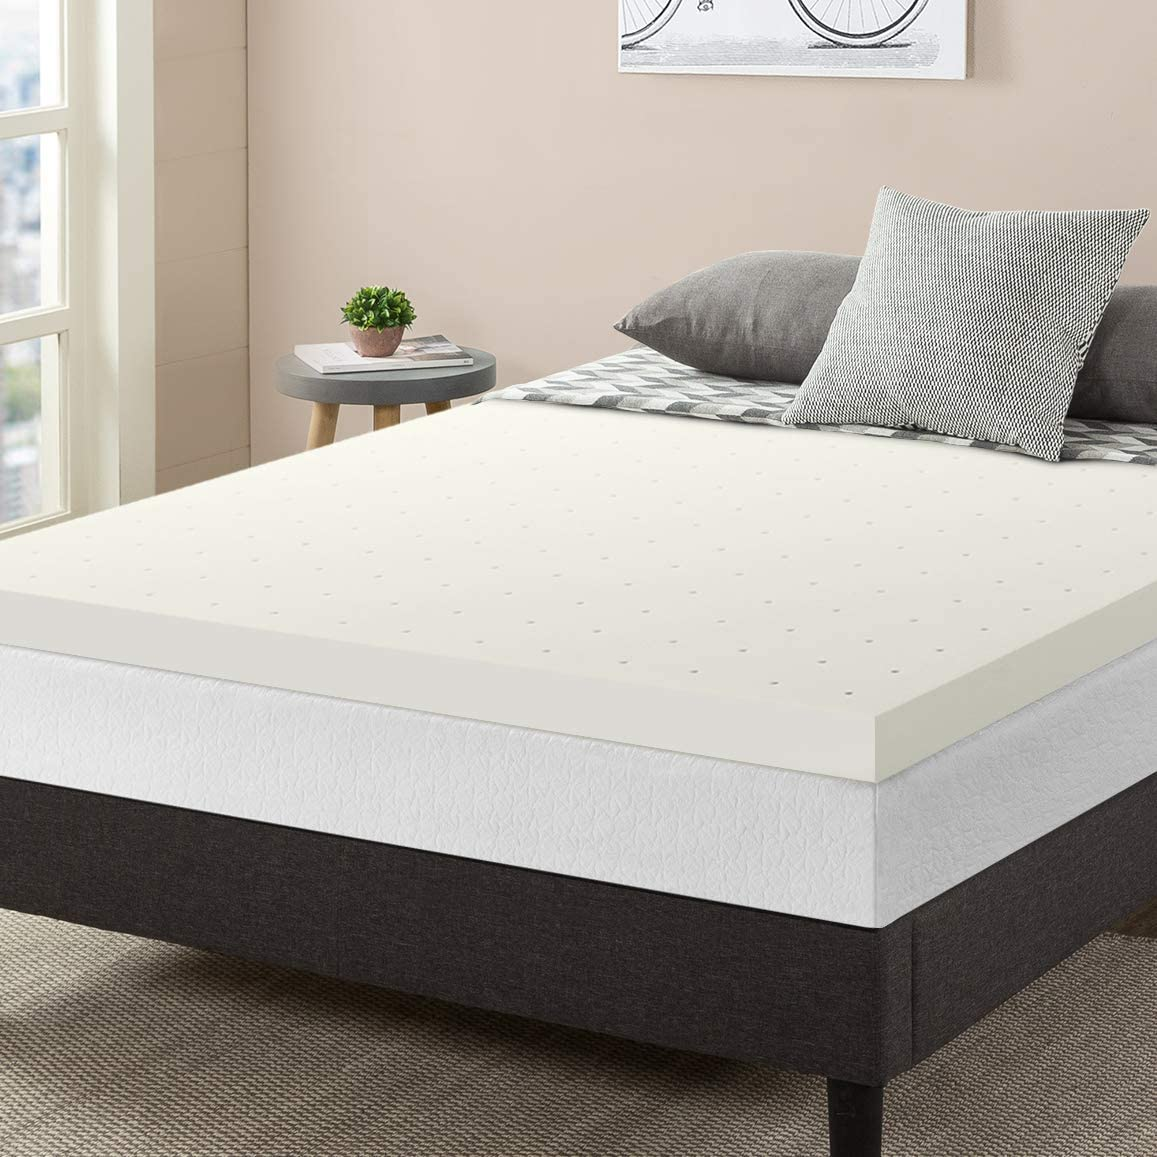 Best Price Mattress Queen Mattress Topper - 3 Inch Memory Foam Bed Topper with Cooling Mattress Pad, Queen Size